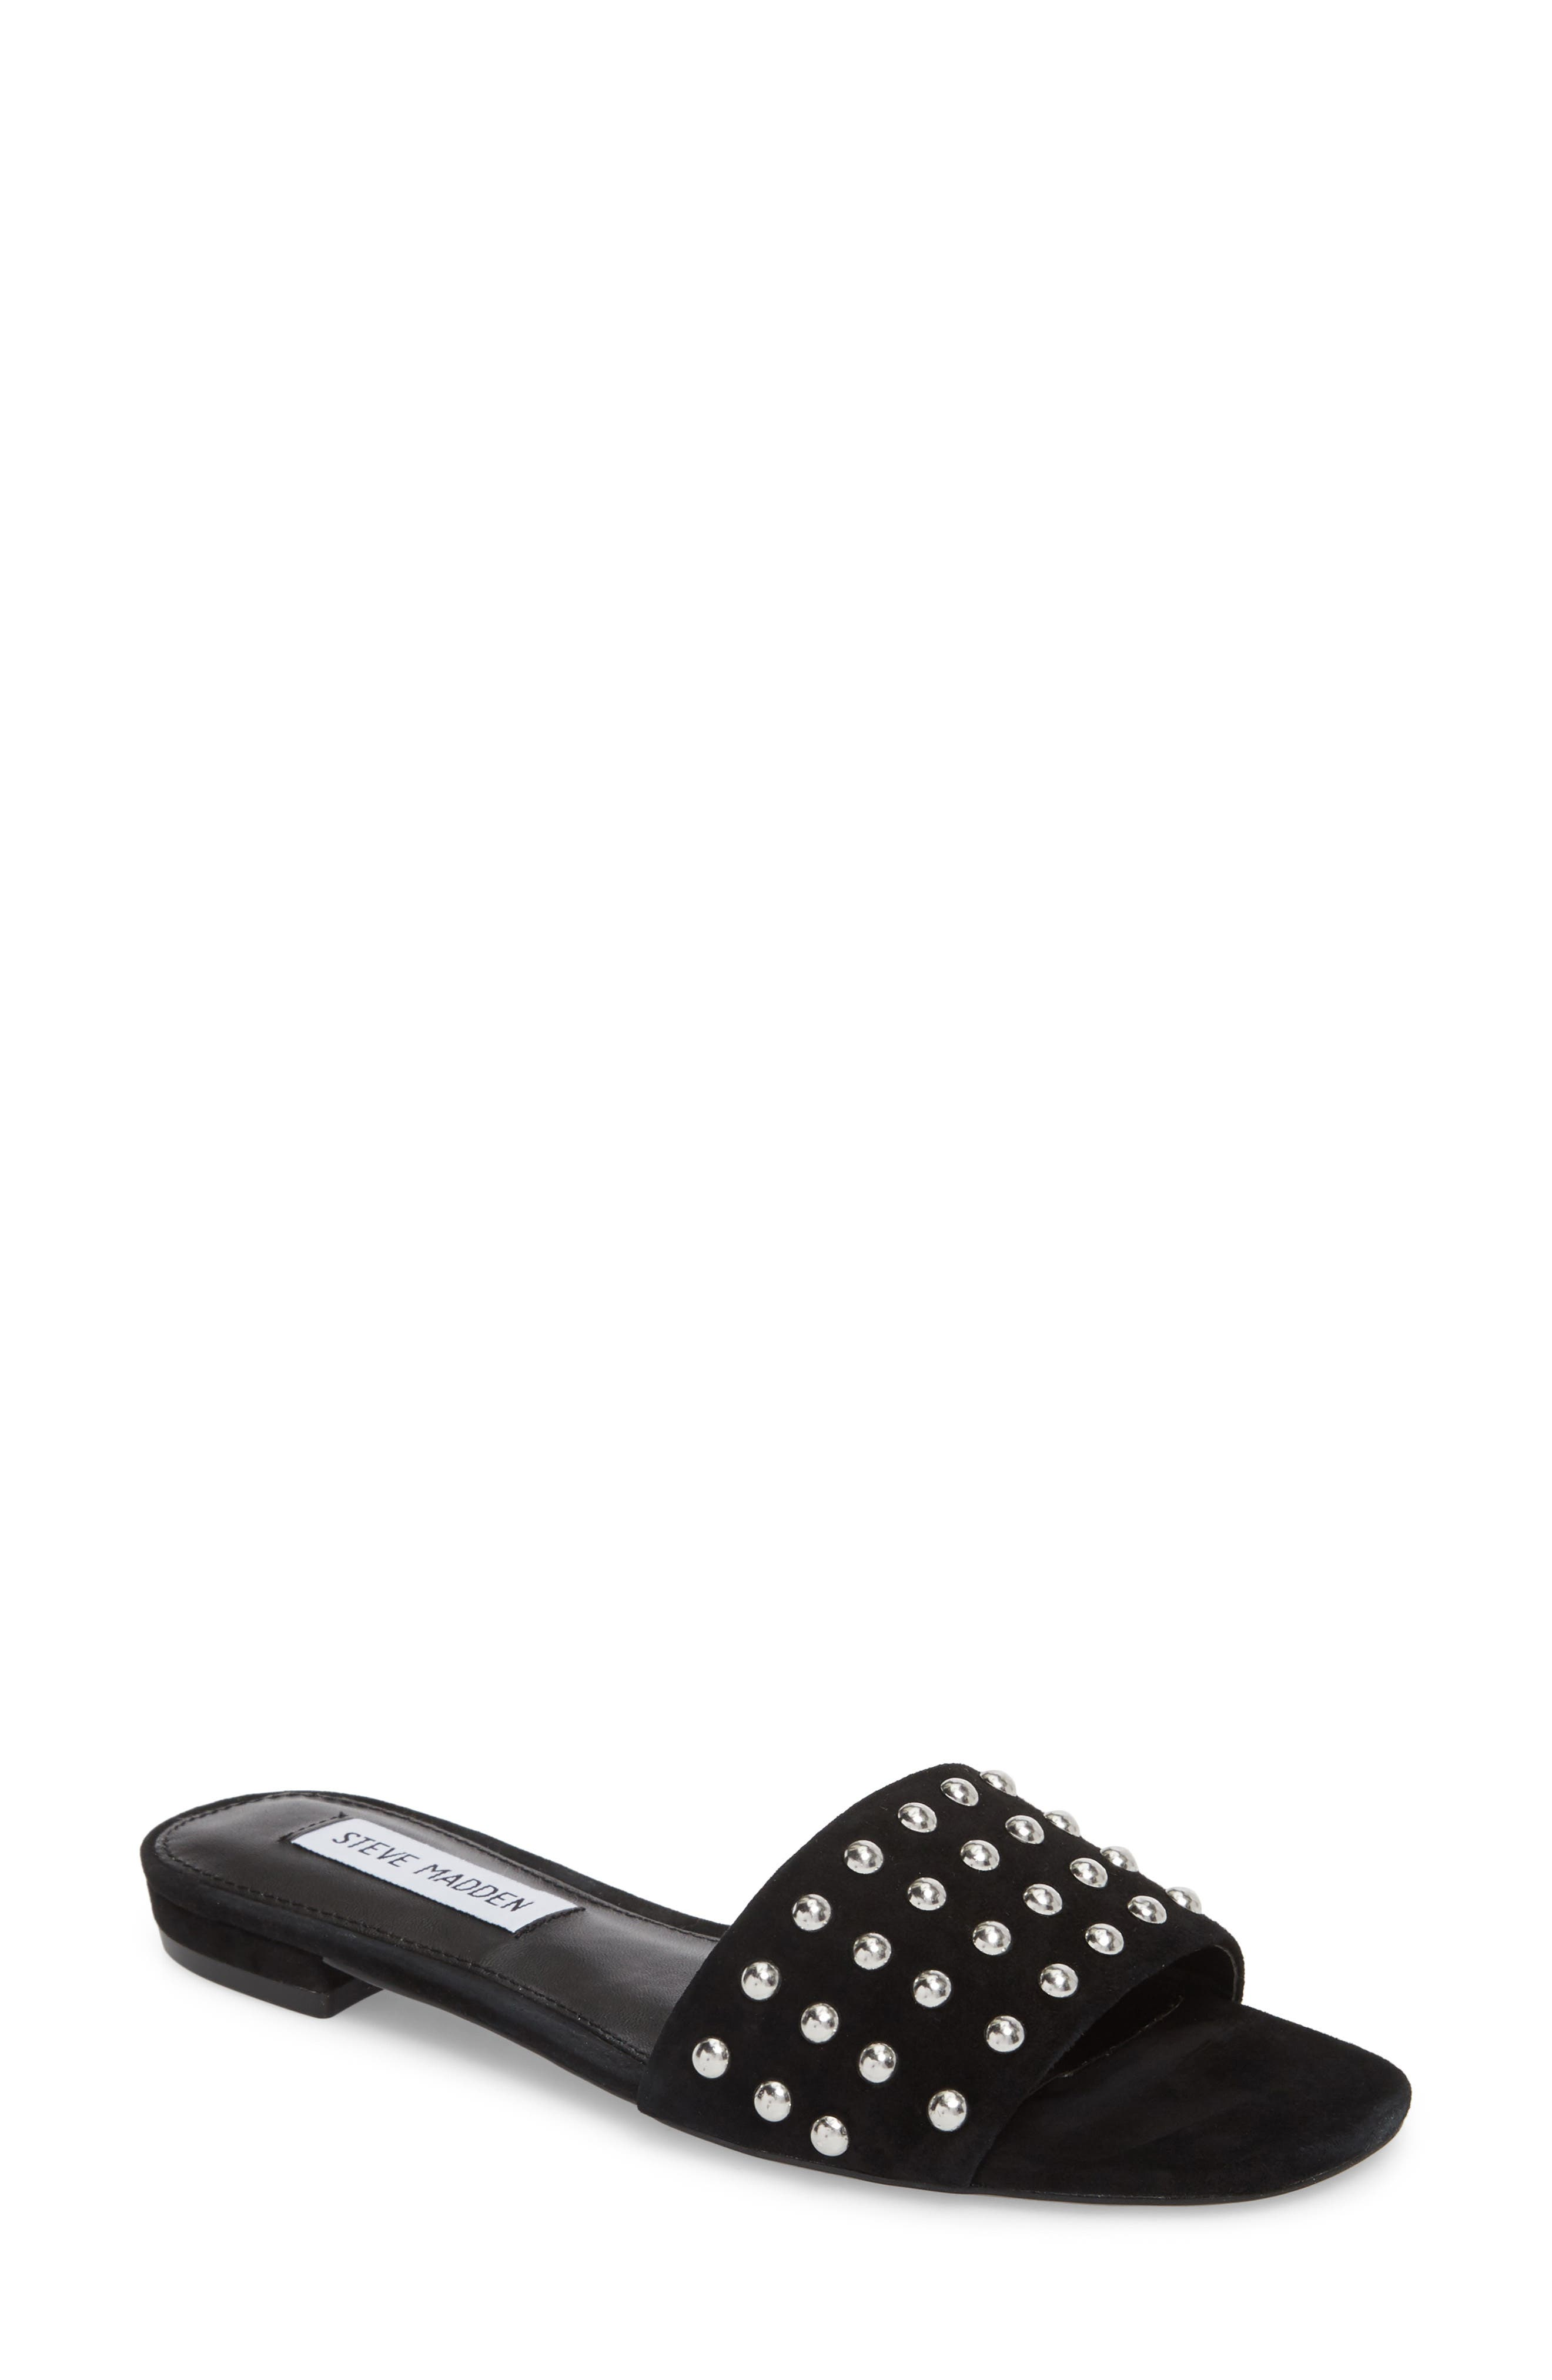 Viv Studded Slide Sandal,                         Main,                         color, 006